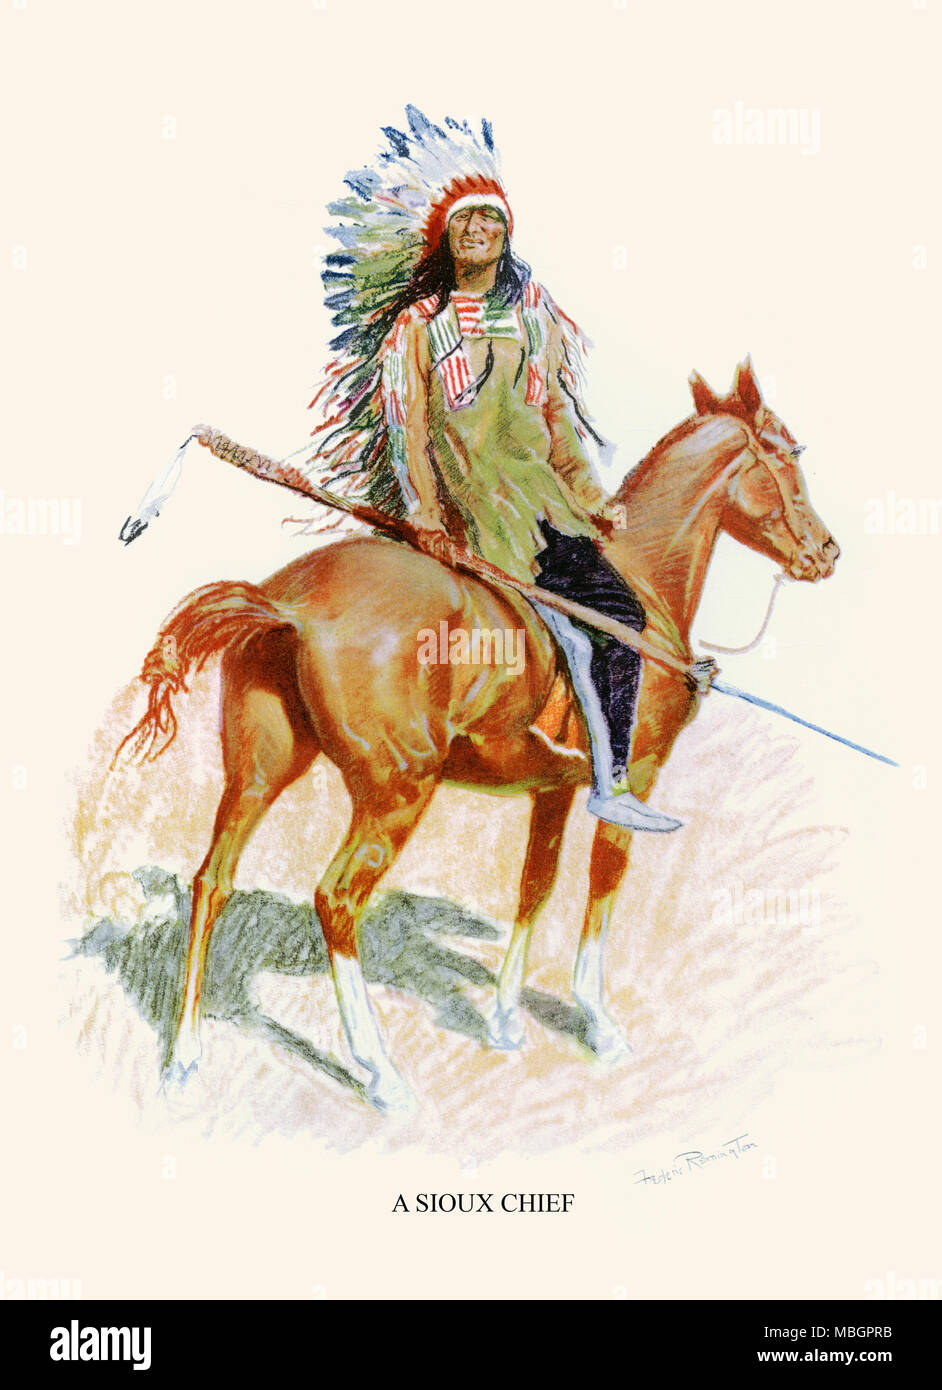 A Sioux Chief - Stock Image